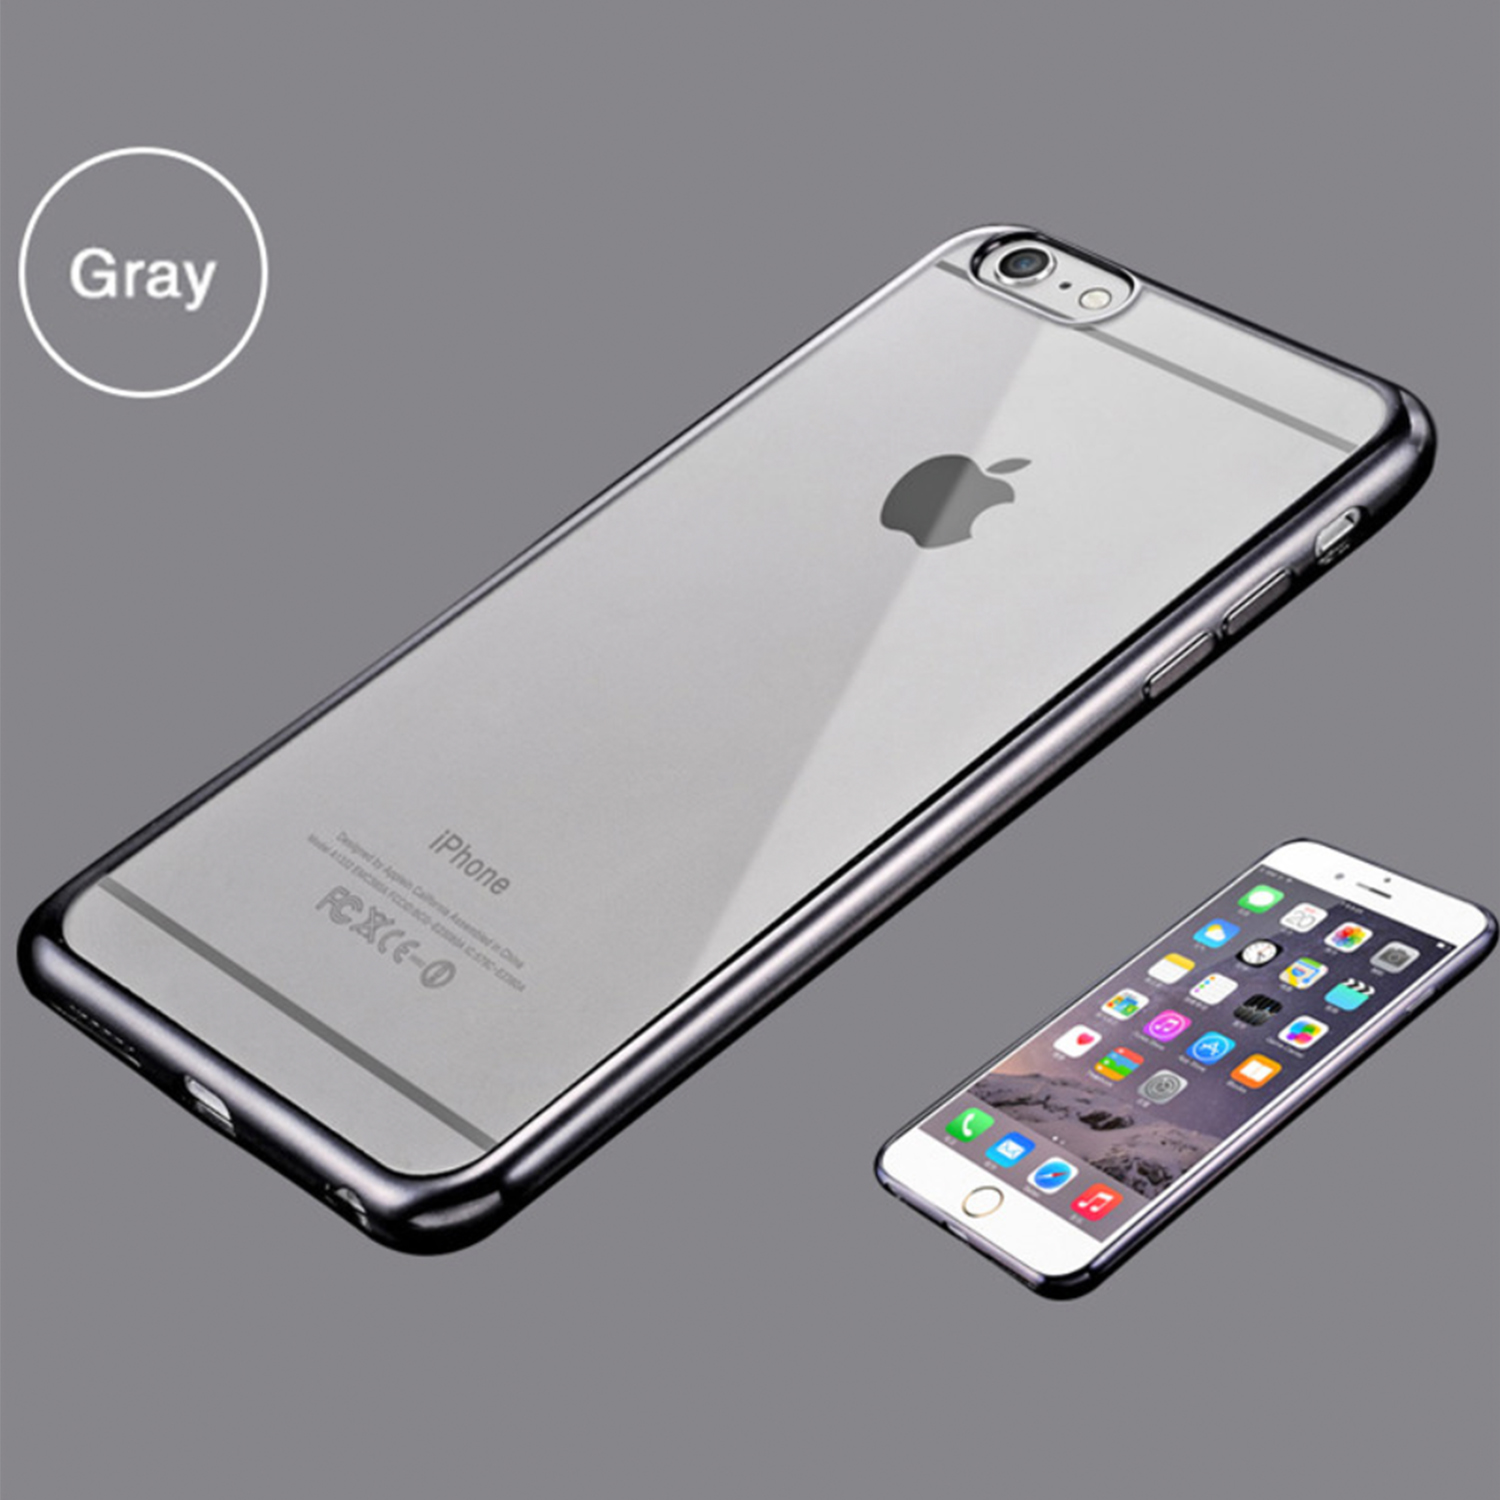 noxcase iphone 6 6s schutz h lle soft cover case motiv grau slim bumper tpu ebay. Black Bedroom Furniture Sets. Home Design Ideas